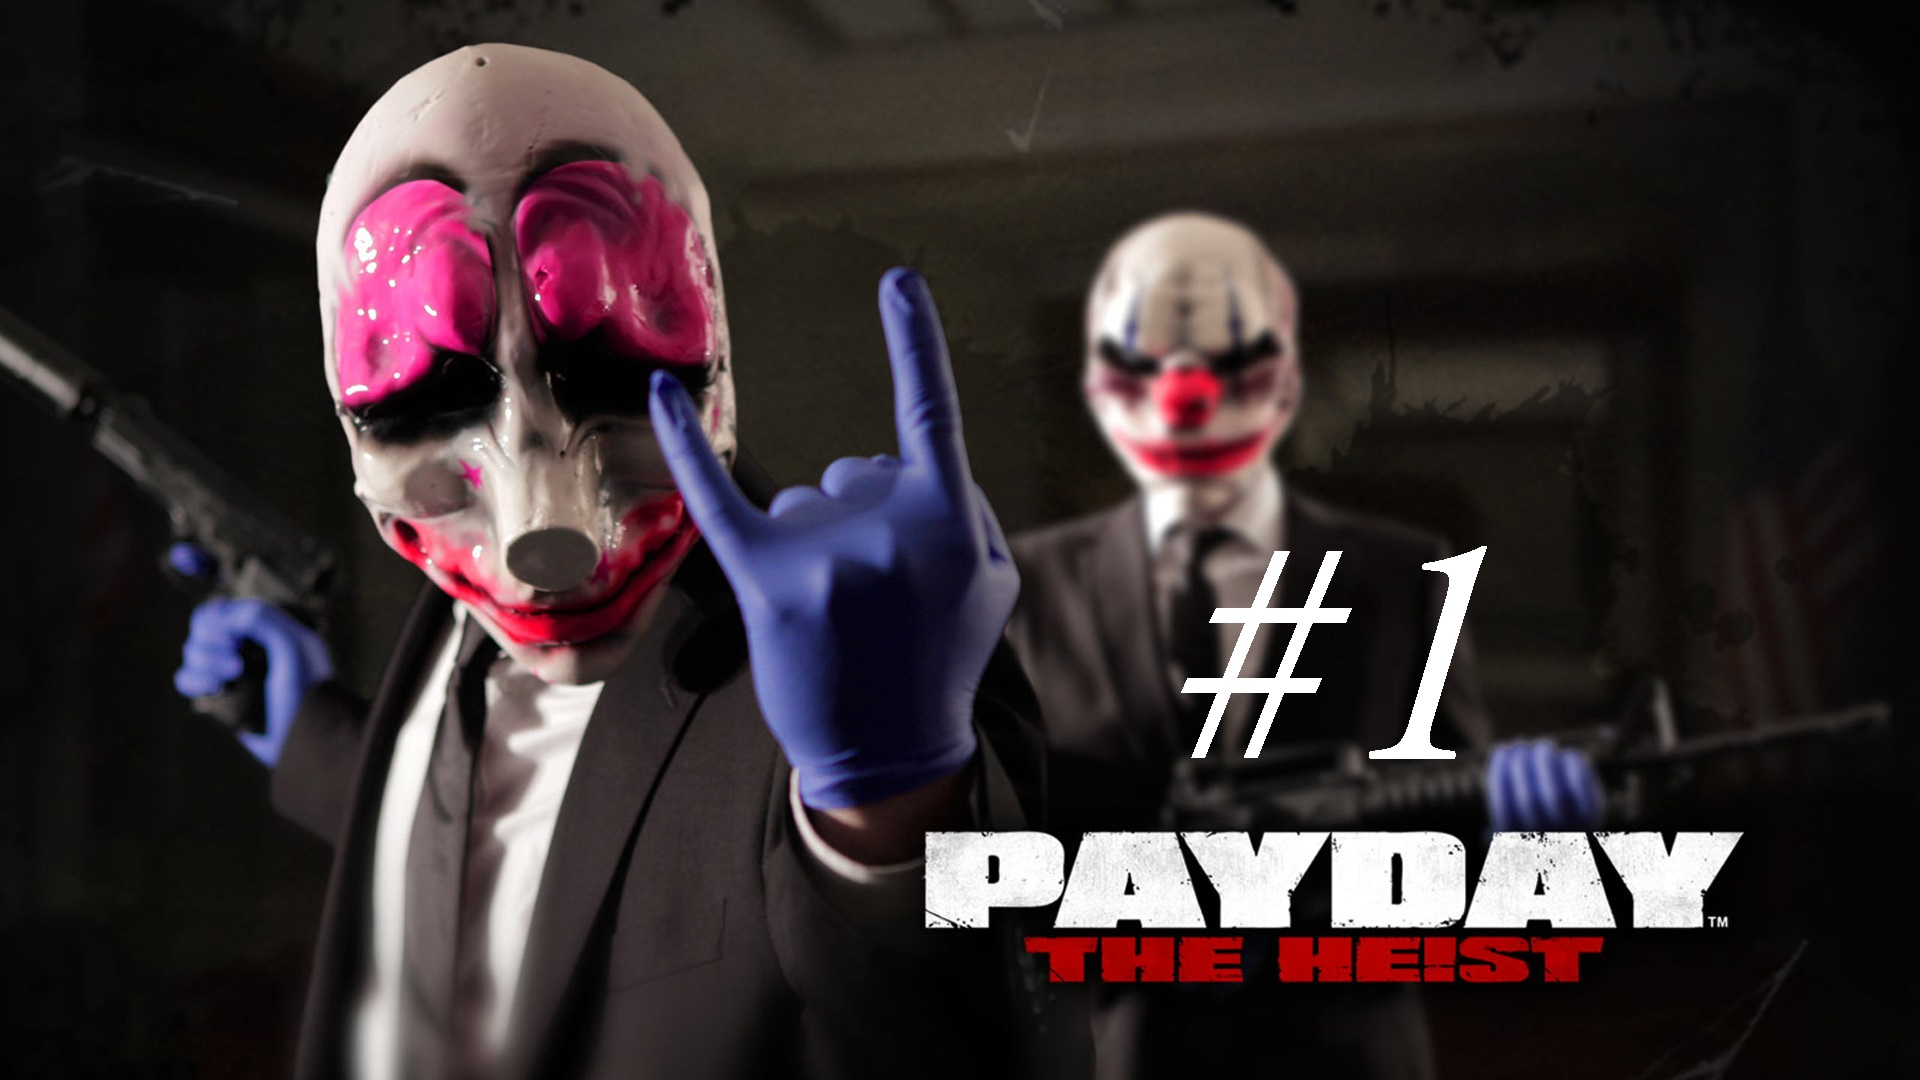 Payday: The Heist Walkthrough Türkçe Bölüm 1: Banka Soygunu